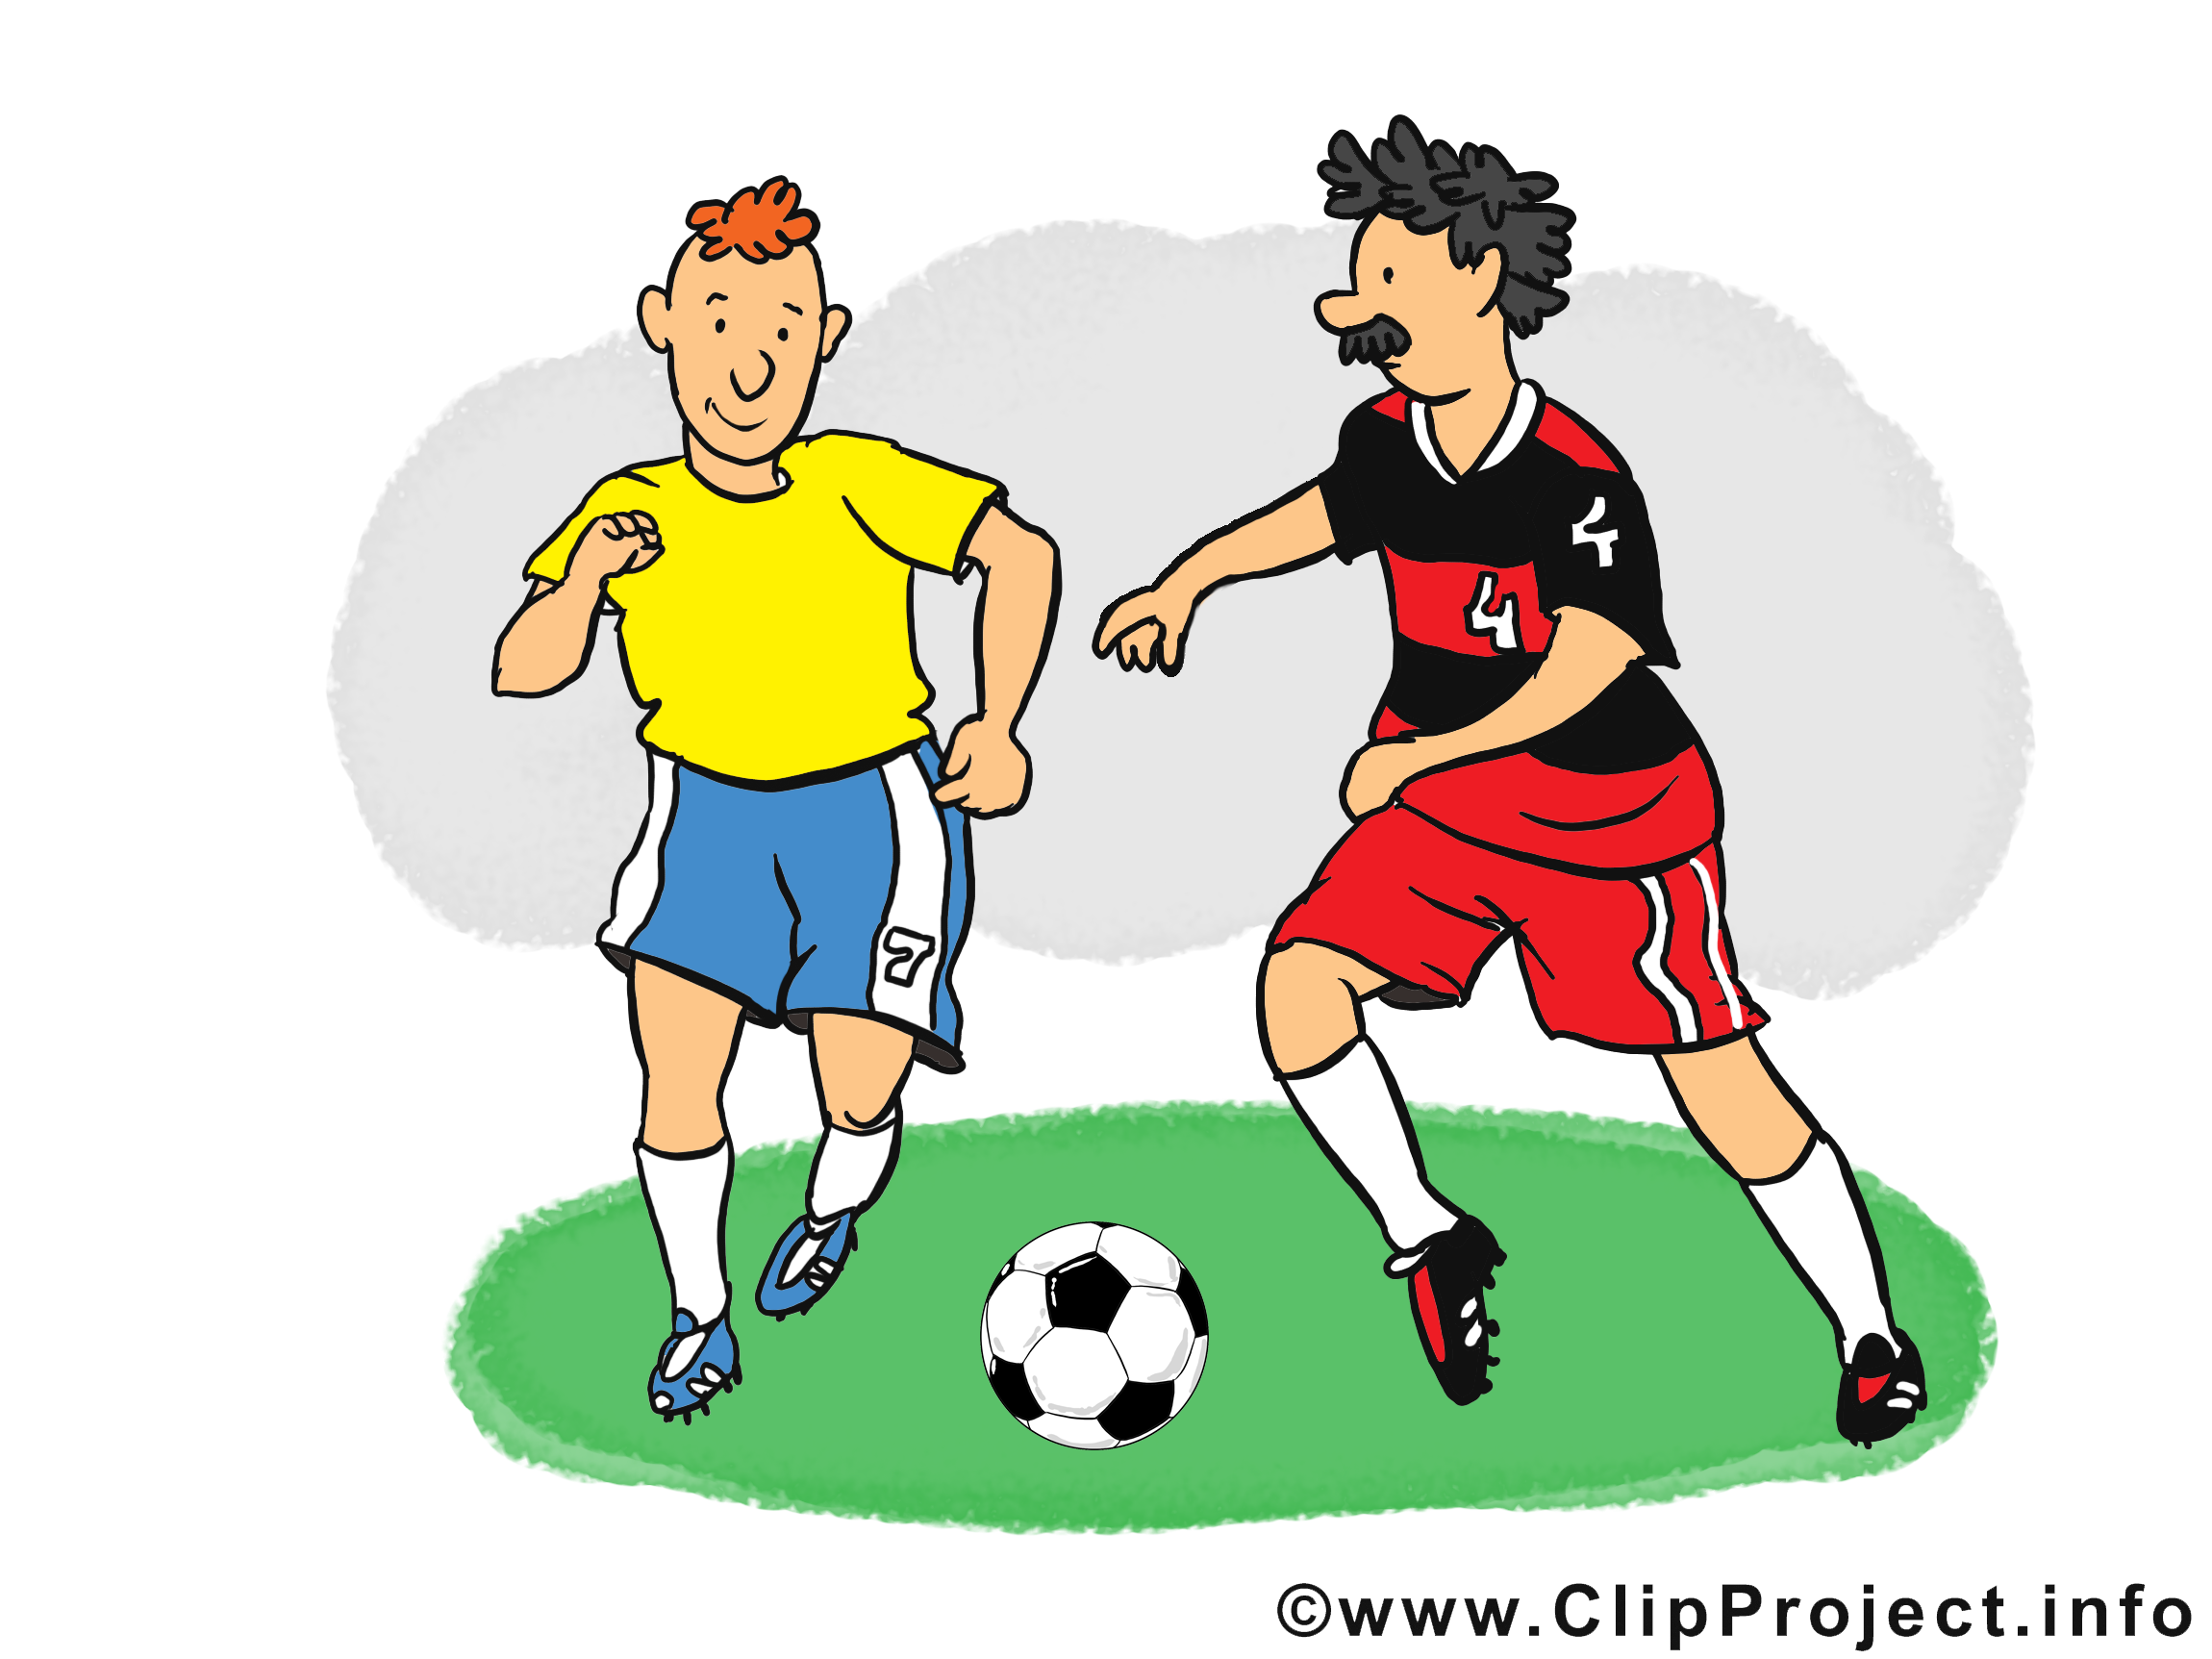 Footballeurs image - Football images cliparts